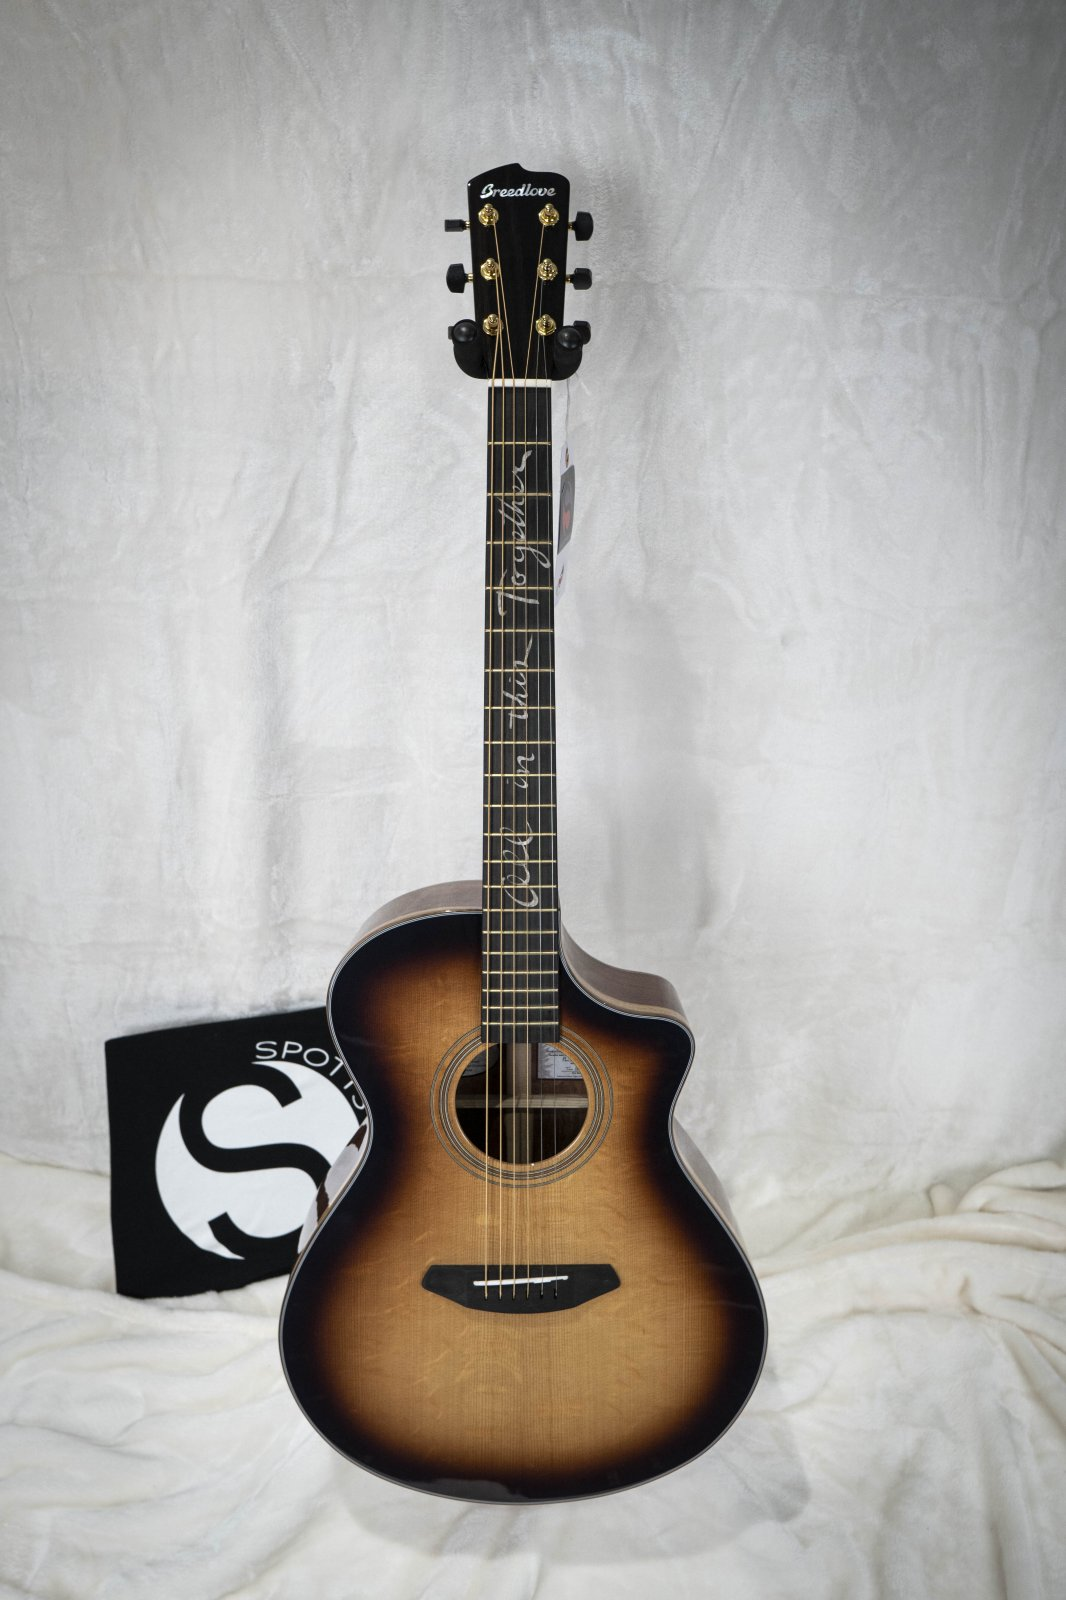 Breedlove Jeff Bridges Amazon Concert Sunburst CE Acoustic Electric Guitar